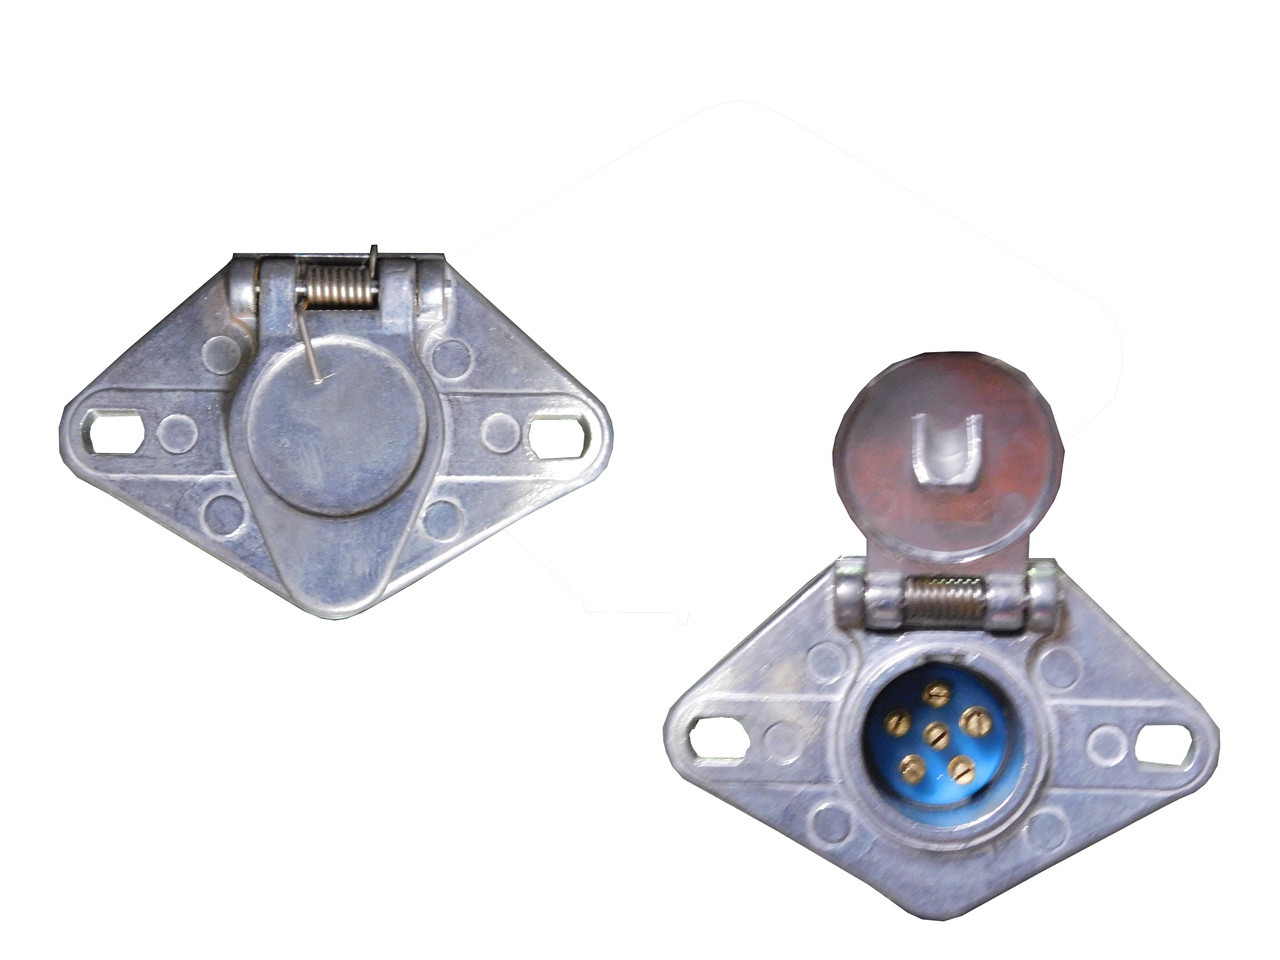 clearance 6 pin round trailer connector female price 8 99 image 1 [ 1280 x 960 Pixel ]